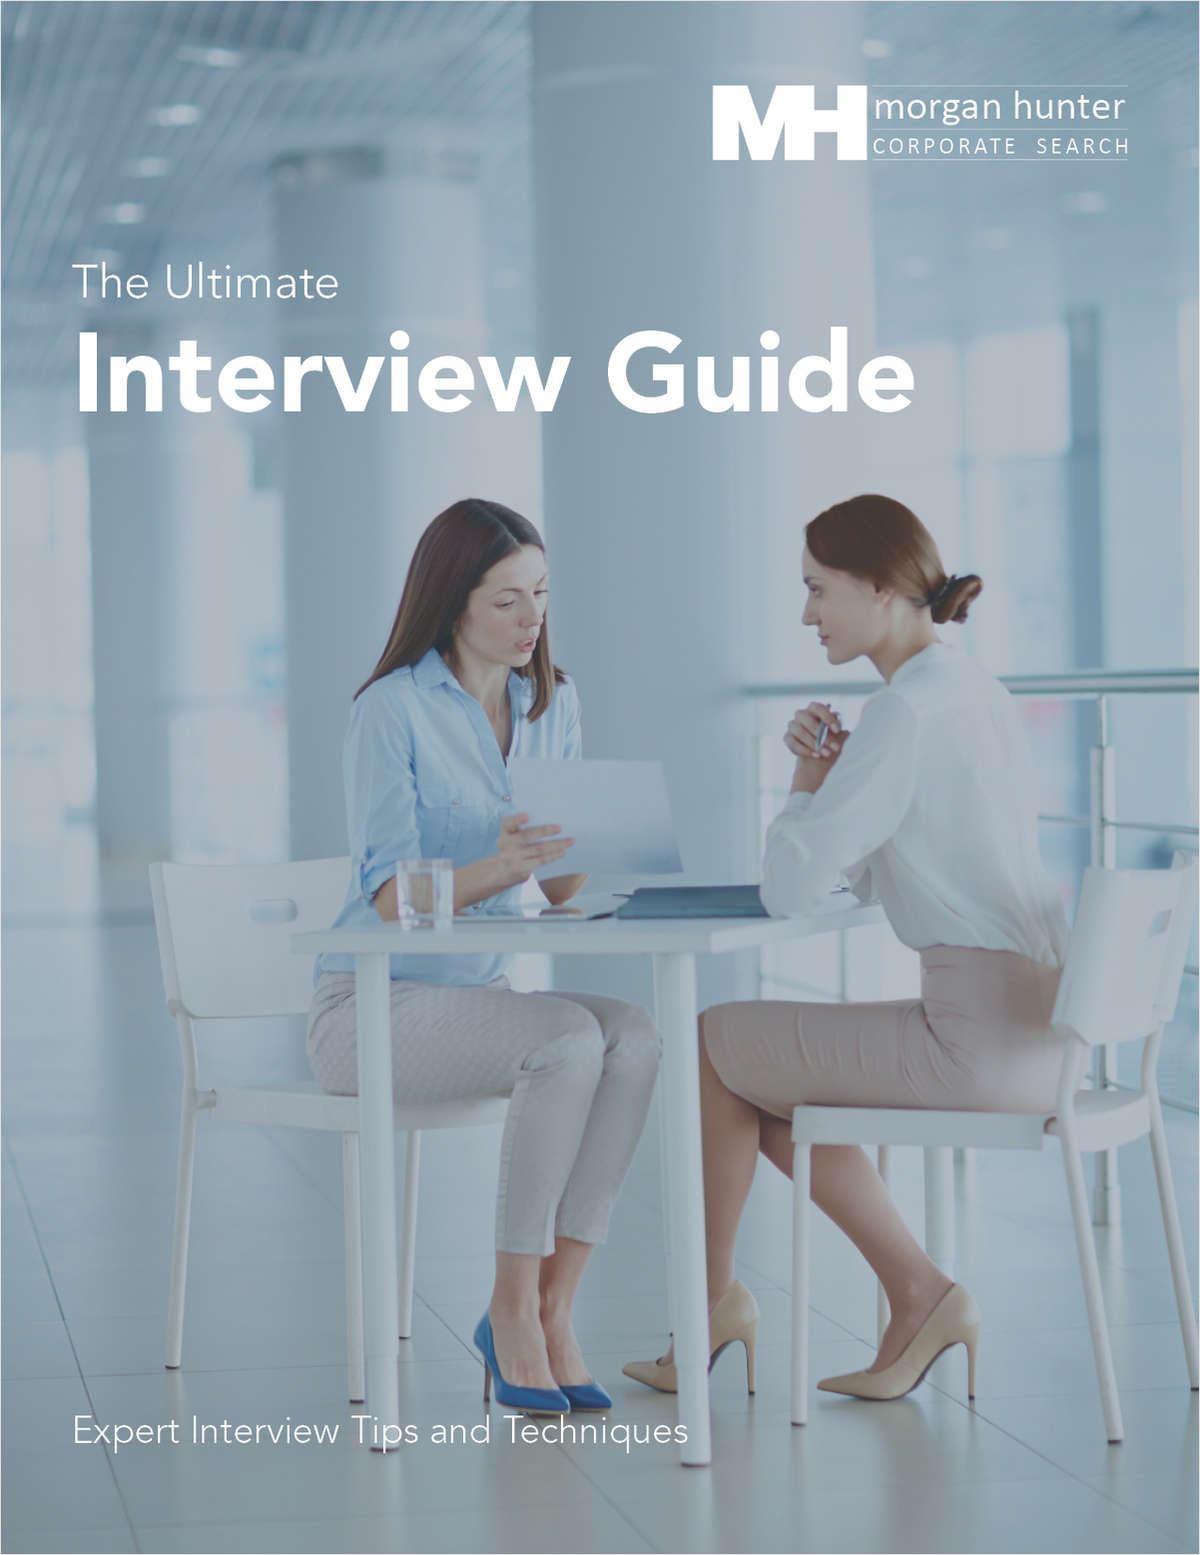 The Ultimate Interview Guide